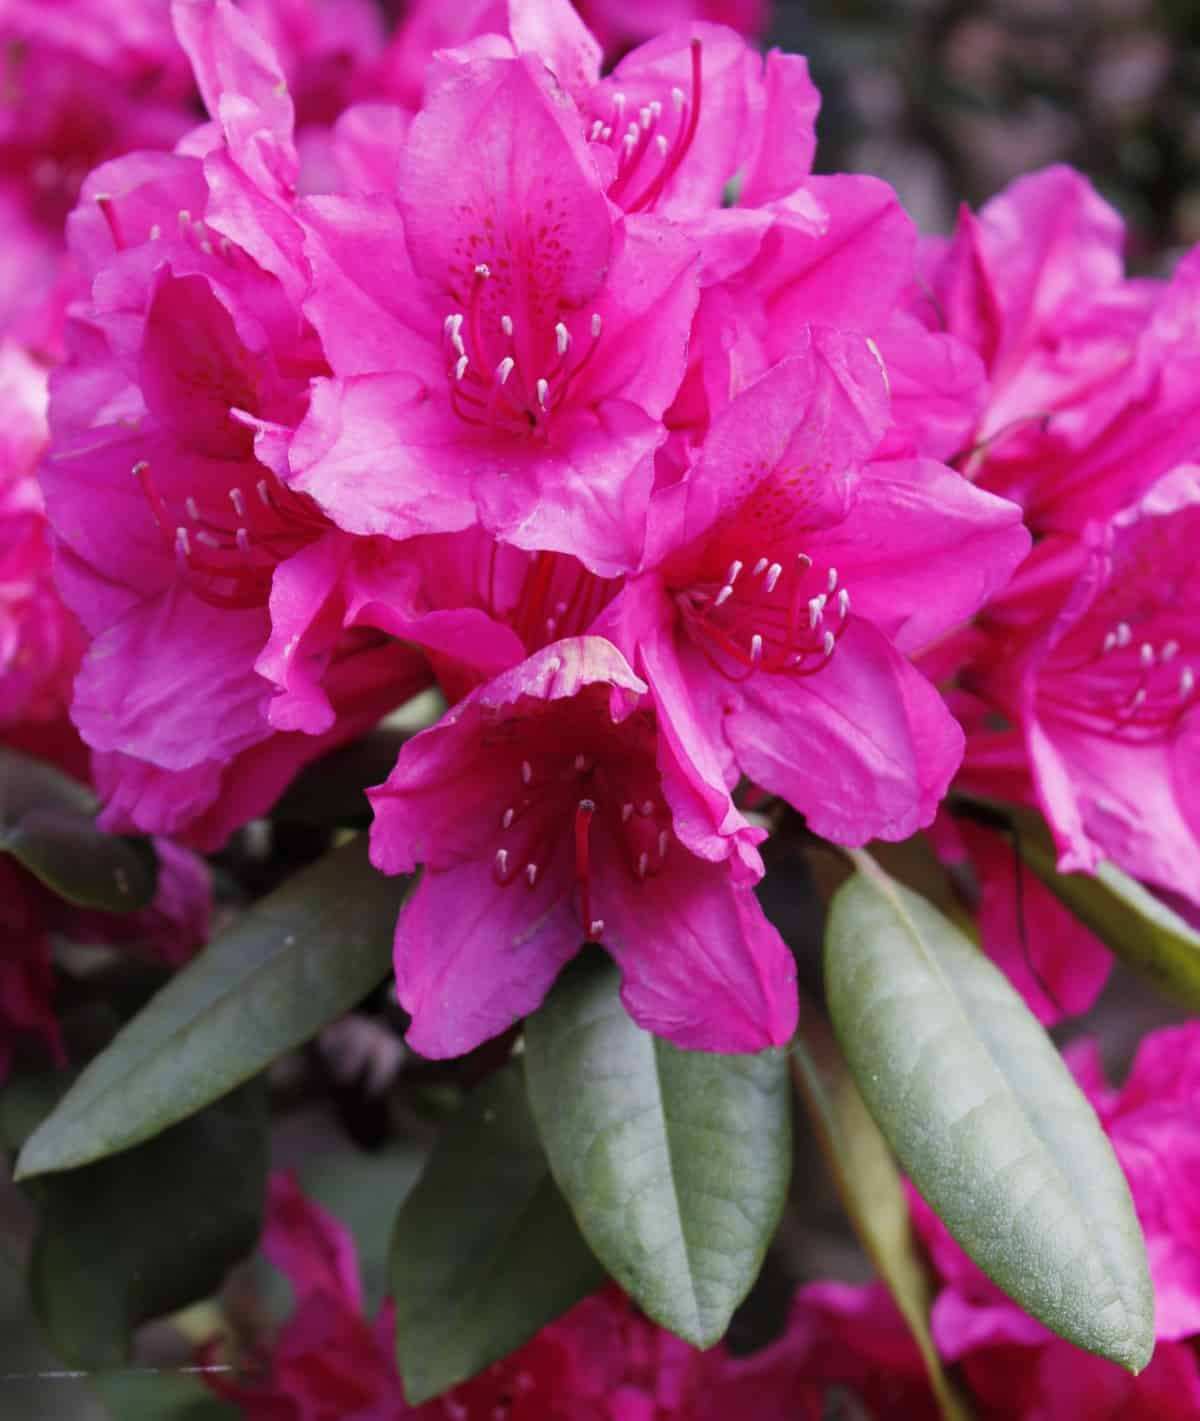 rhododendrons make an ideal evergreen container plant